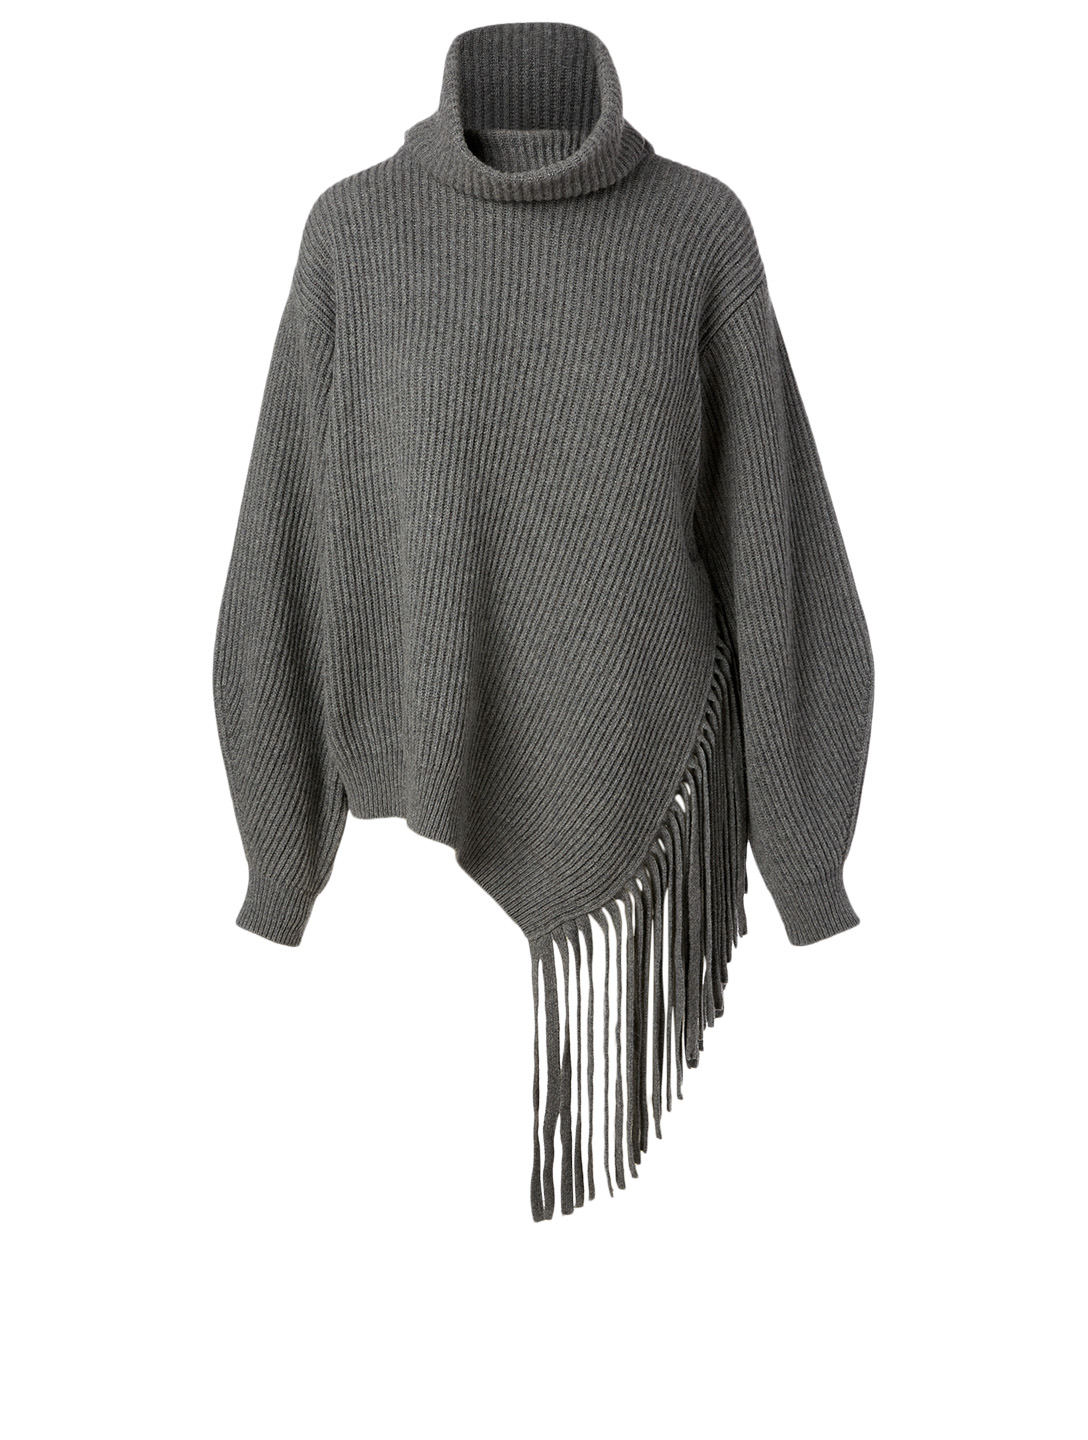 STELLA MCCARTNEY Cashmere Turtleneck Sweater With Fringe Women's Grey